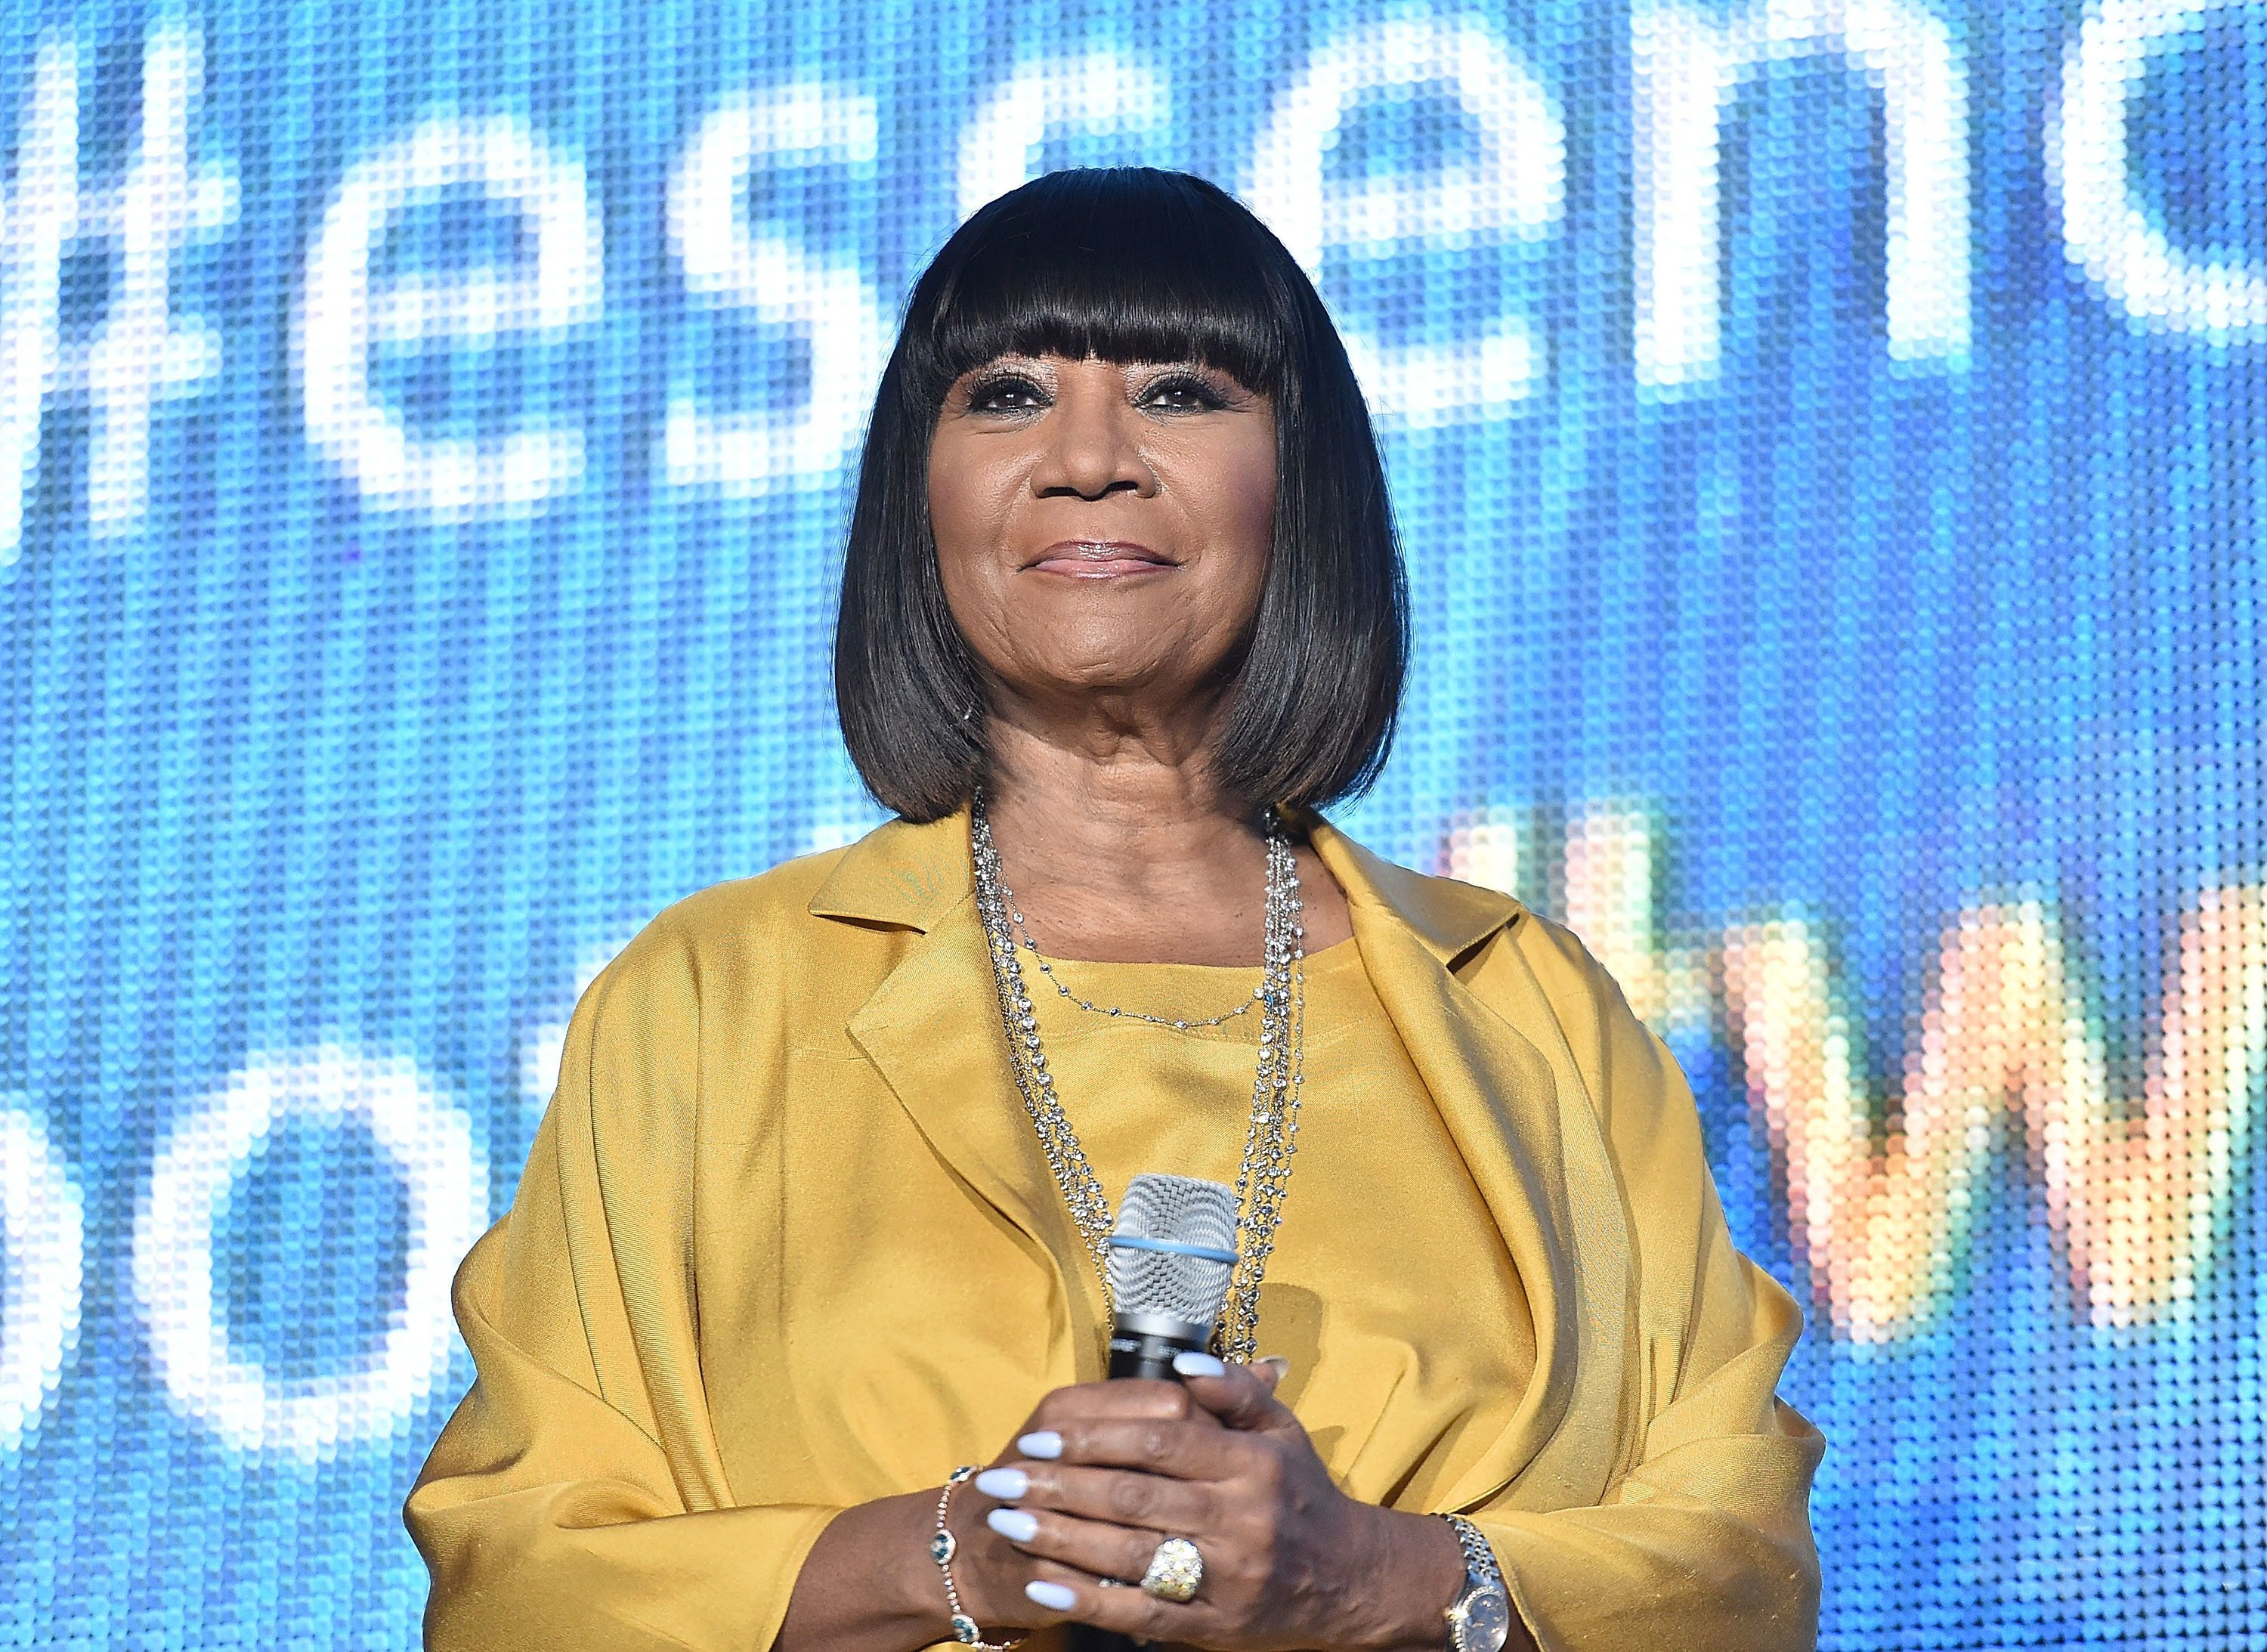 NEW ORLEANS, LA - JULY 02:  Singer Patti Labelle on stage during the 2016 Essence Festival at the Louisiana Superdome on July 2, 2016 in New Orleans, Louisiana.  (Photo by Paras Griffin/Getty Images)